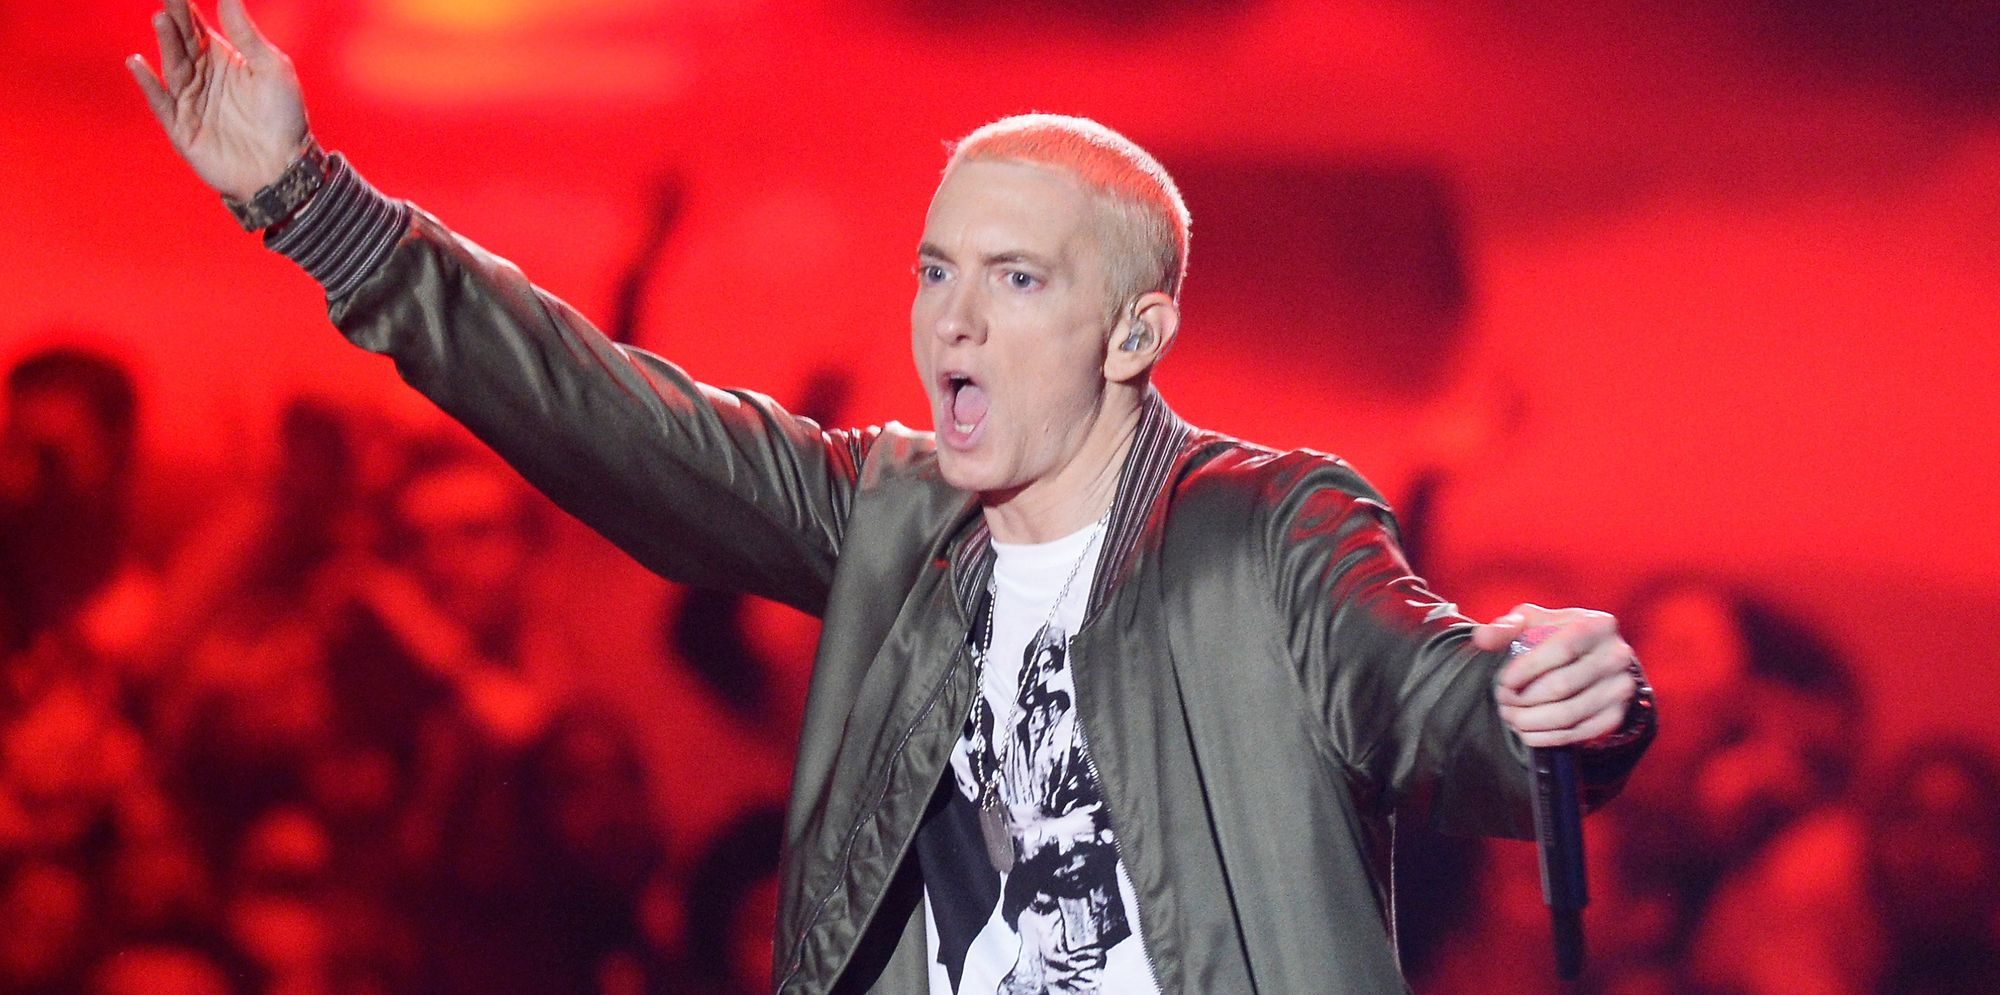 eminem pens essay praising the true genius of tupac shakur the eminem pens essay praising the true genius of tupac shakur the huffington post